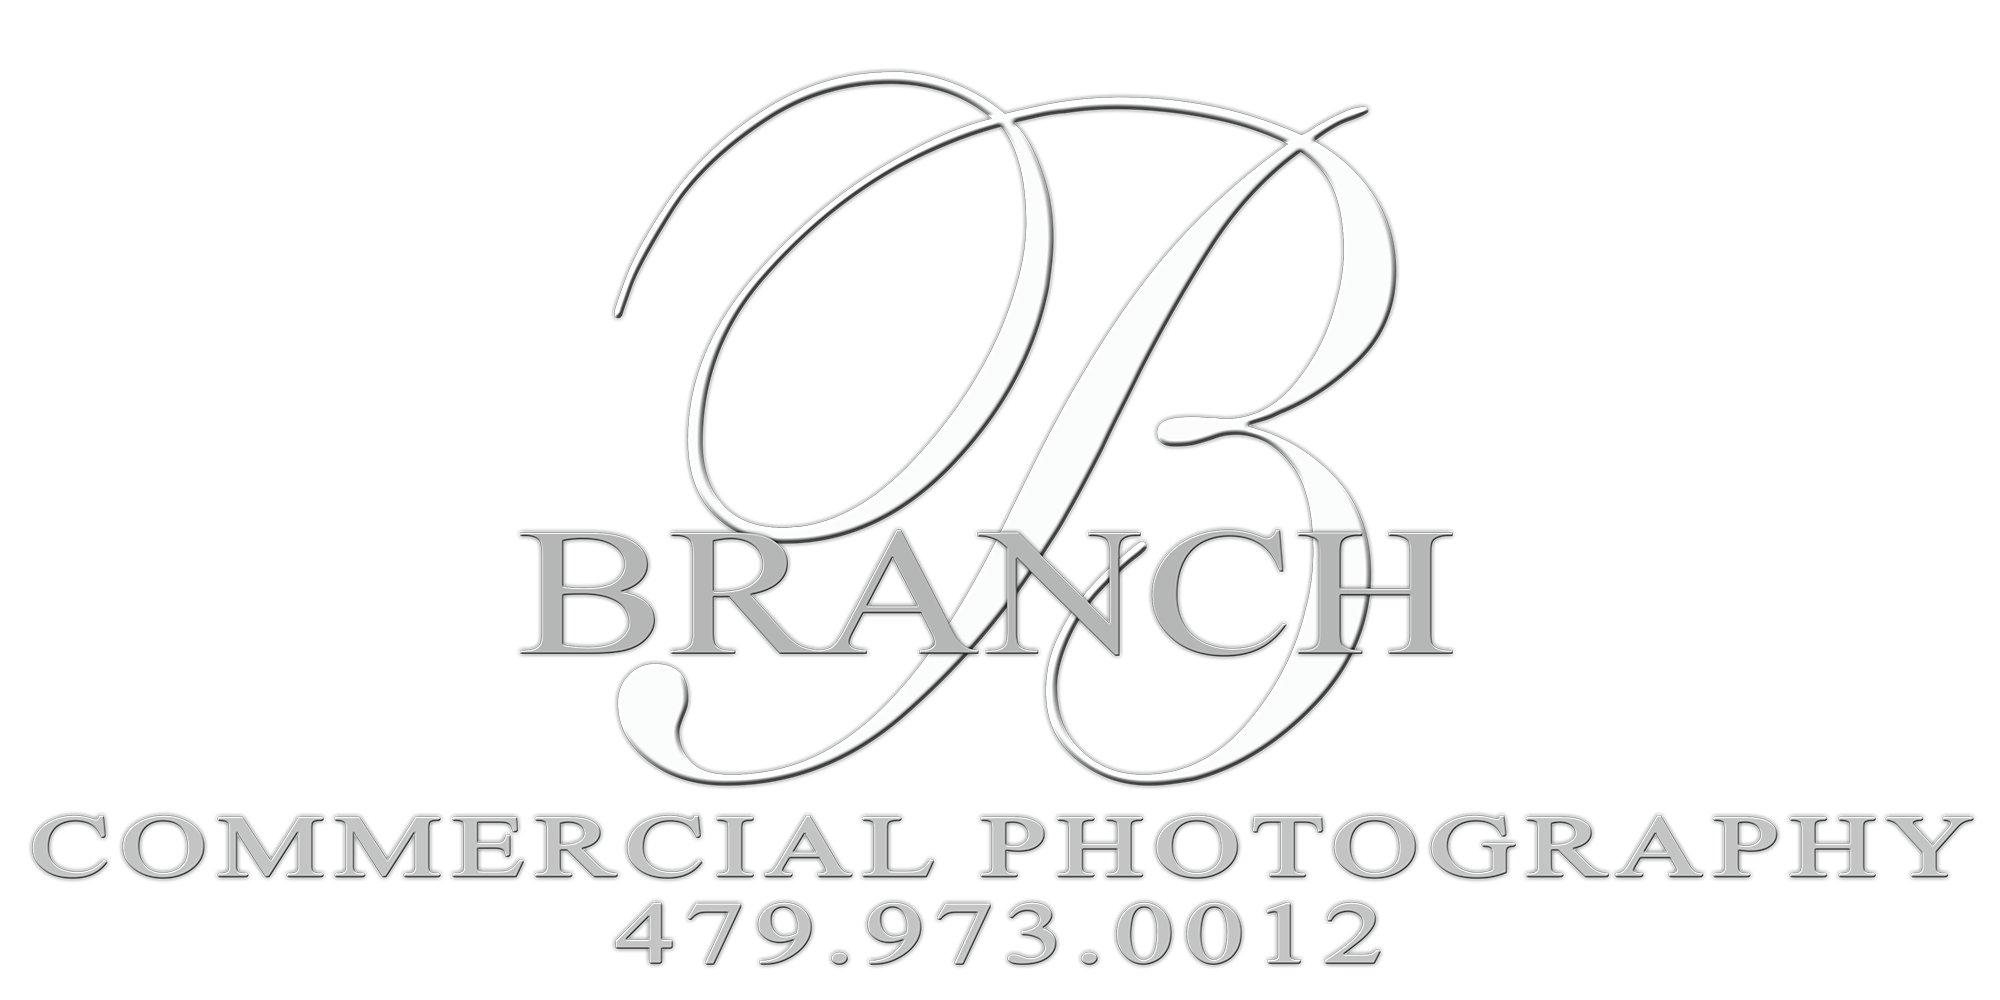 Branch Commercial Photography Logo